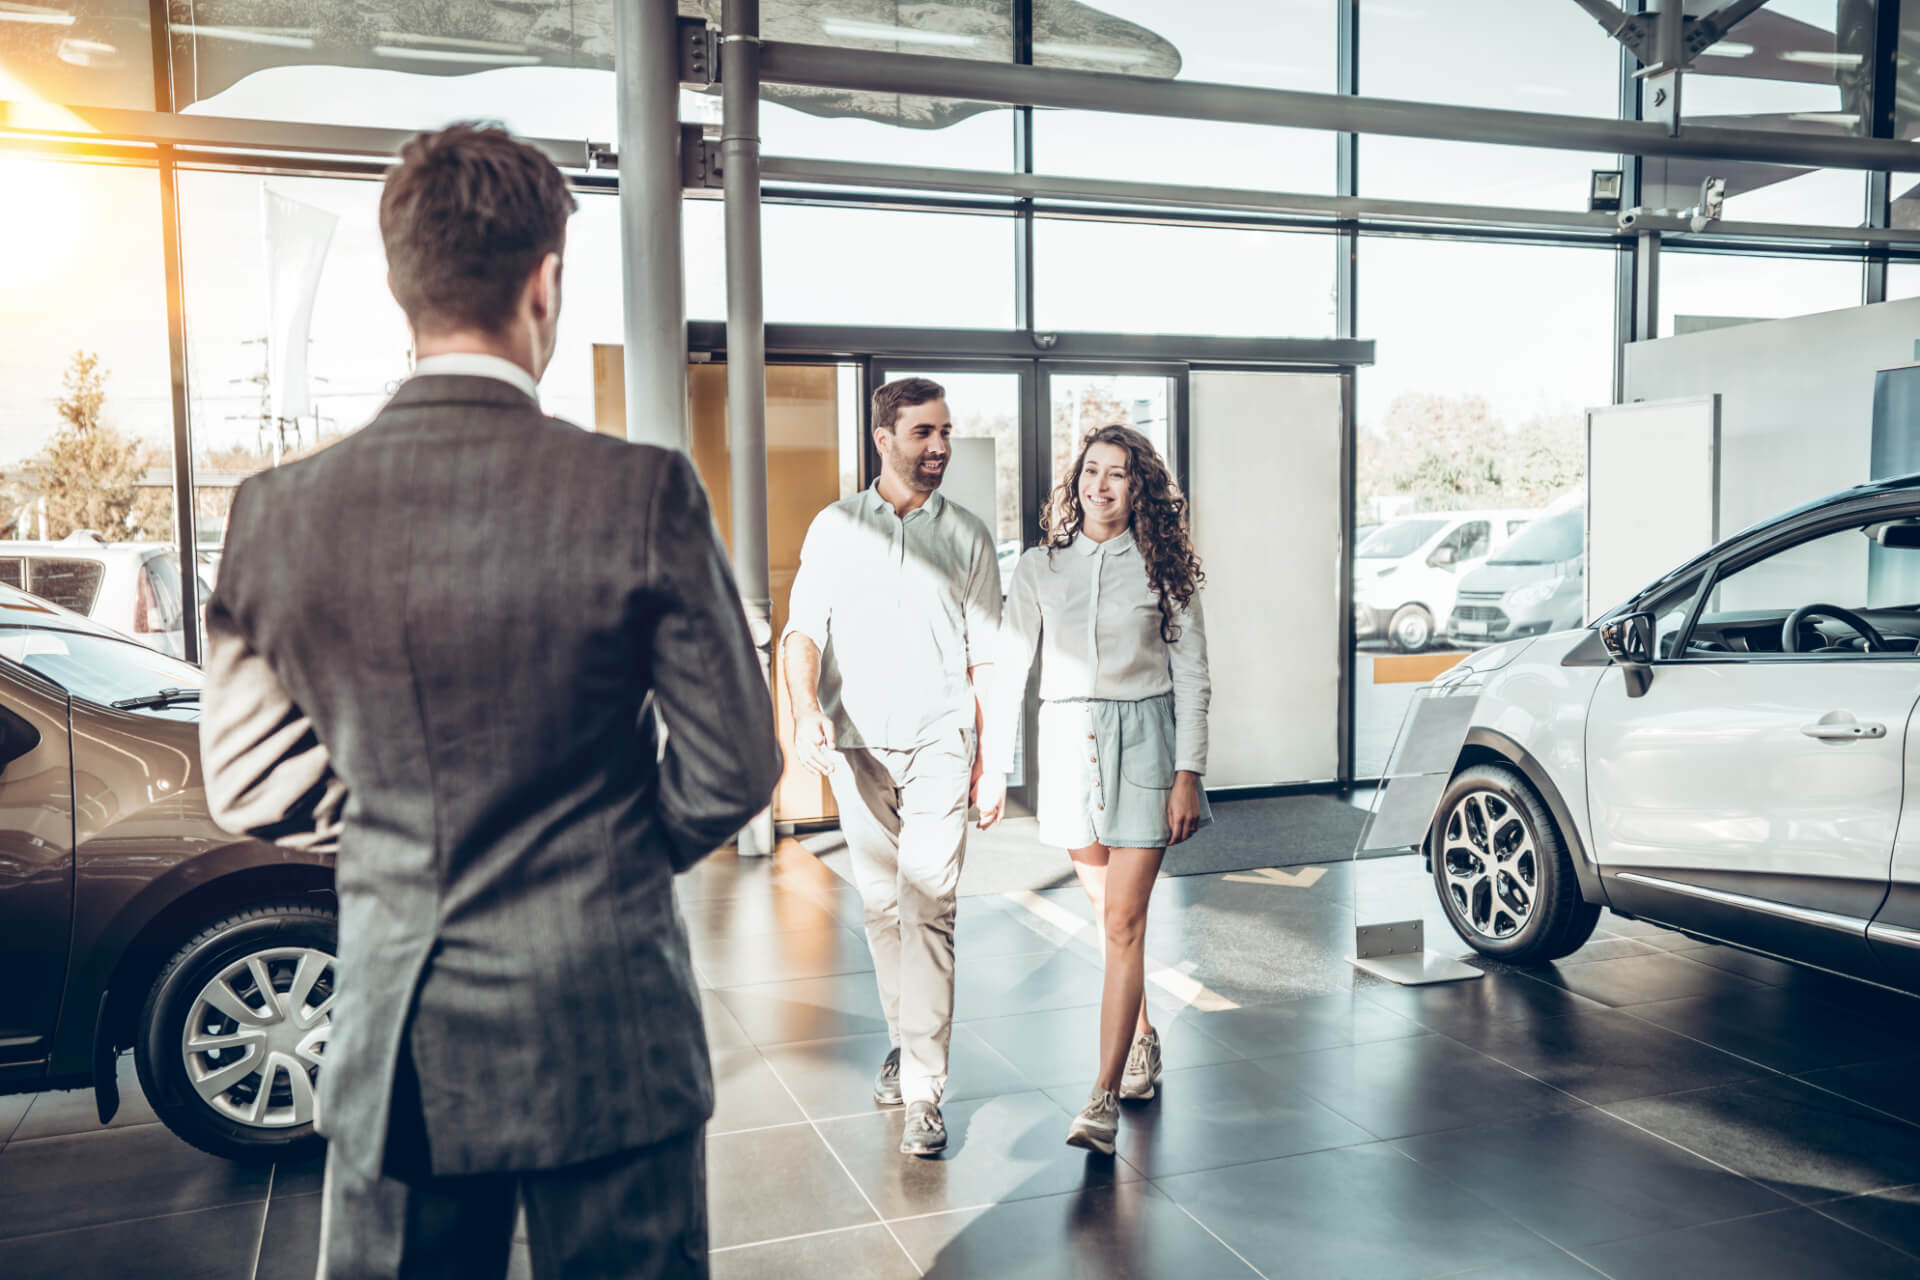 Stepping into a Car Dealership: What's Acceptable and What's Not